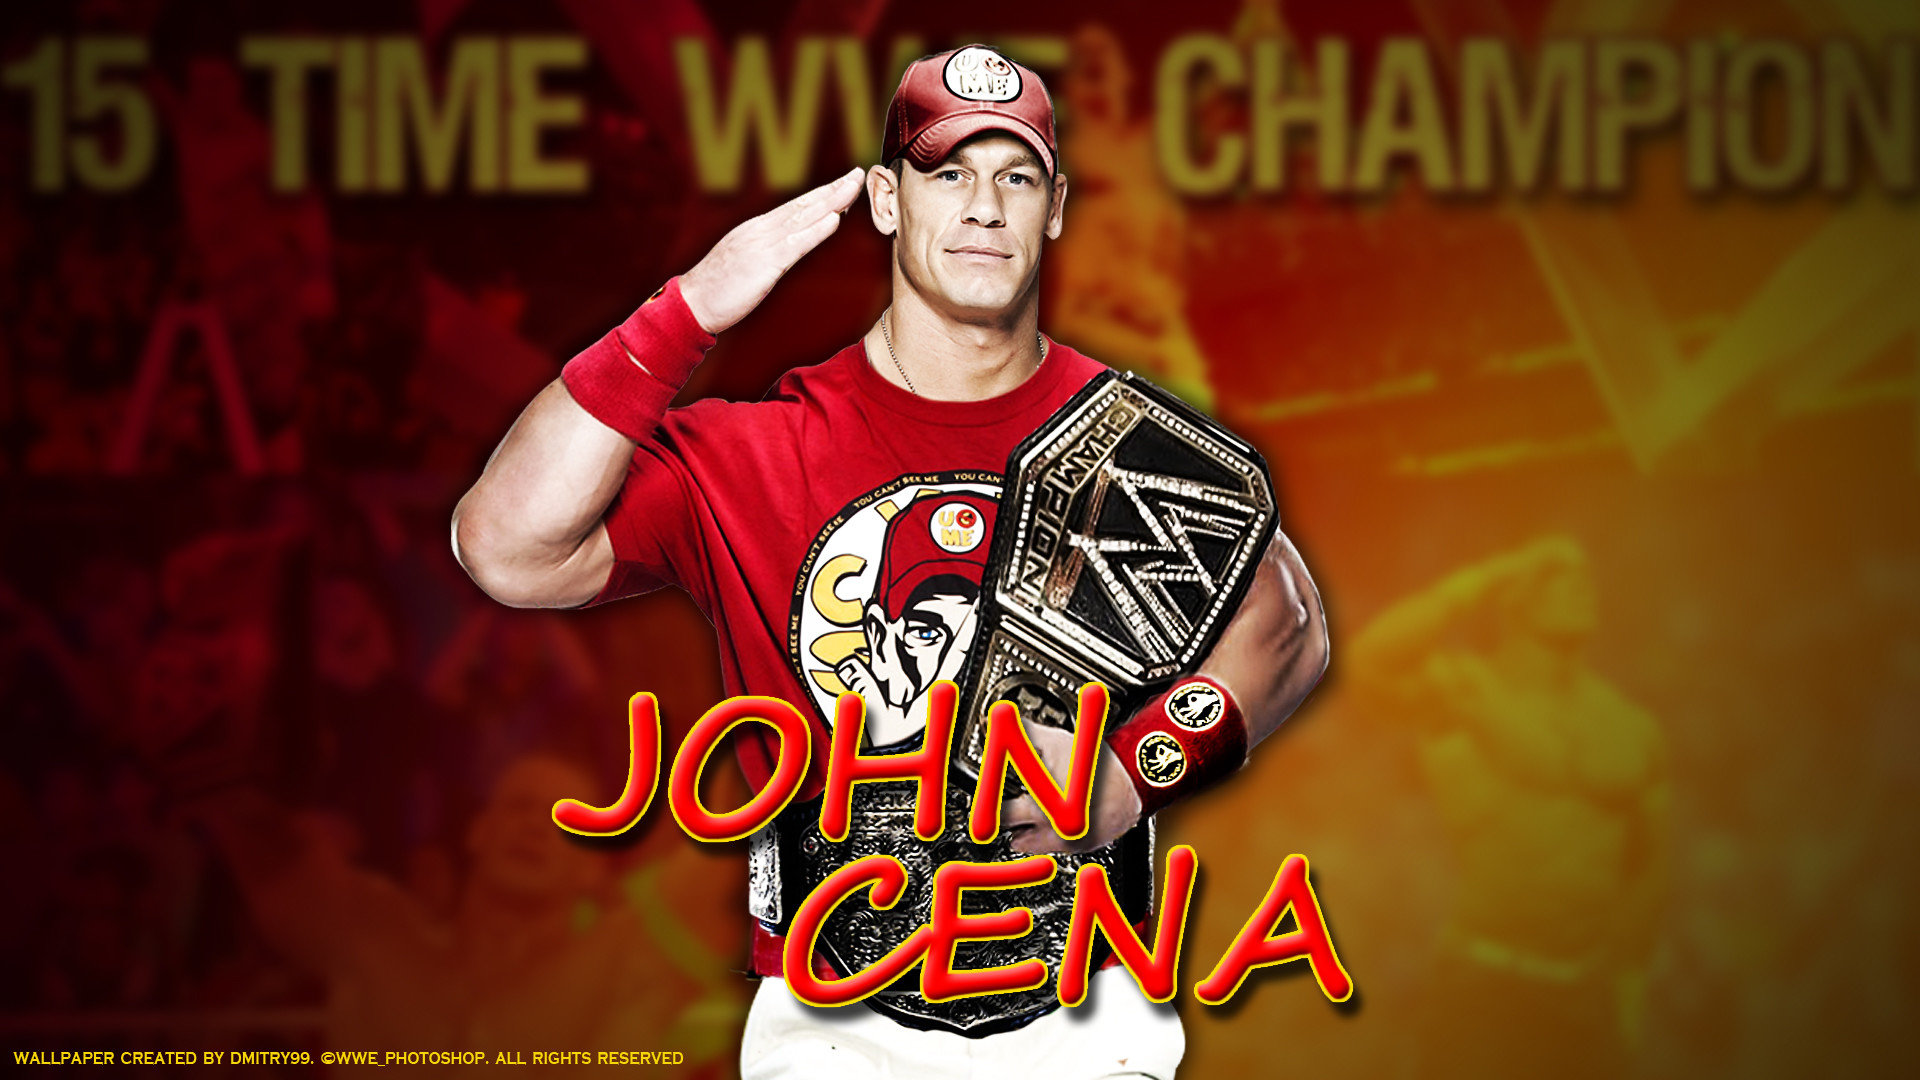 1920x1080 johncena - Google Search | John Cena | Pinterest | John cena and Wwe  superstars